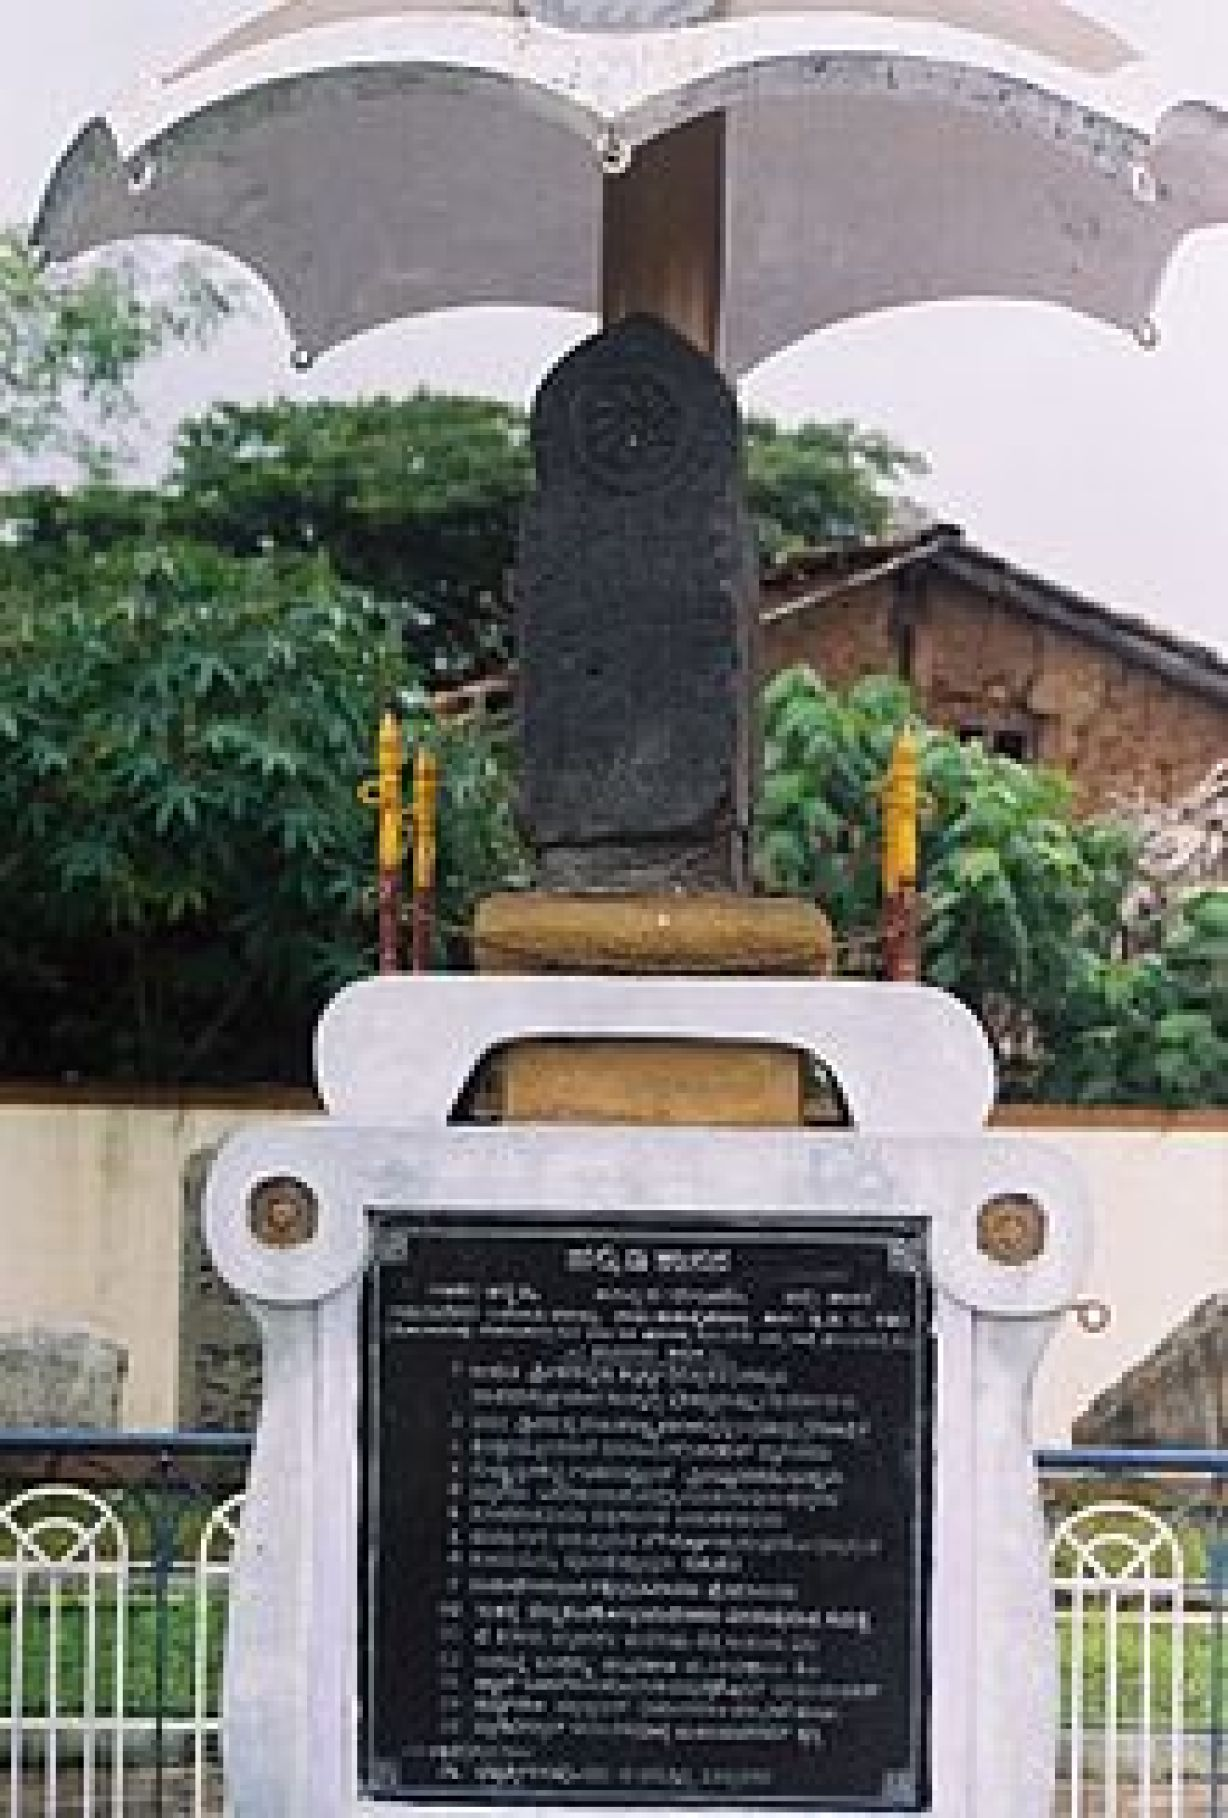 Monument with black plaque of inscribed writing